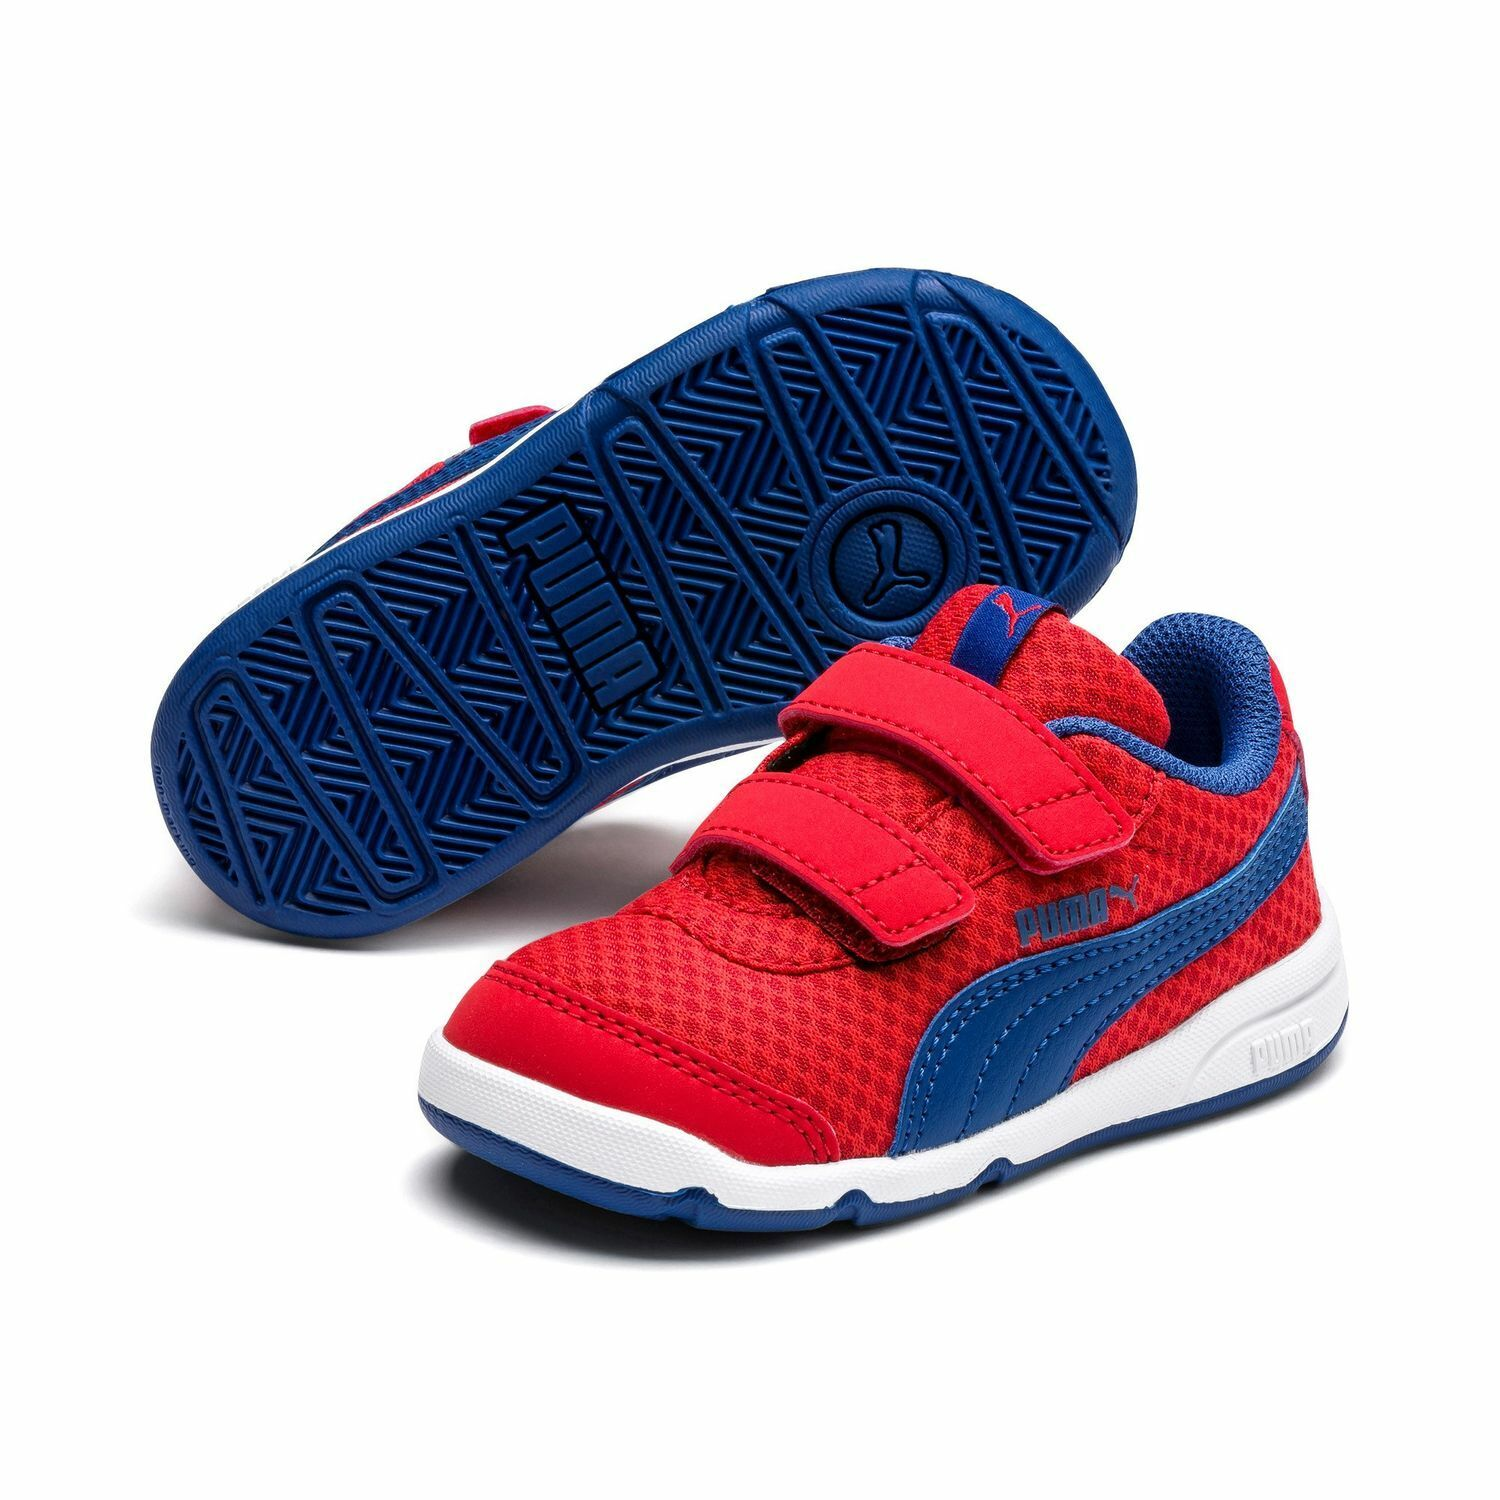 Puma Stepfleex 2 Mesh Ve V Inf Children Baby Shoes Trainers 192525 Red